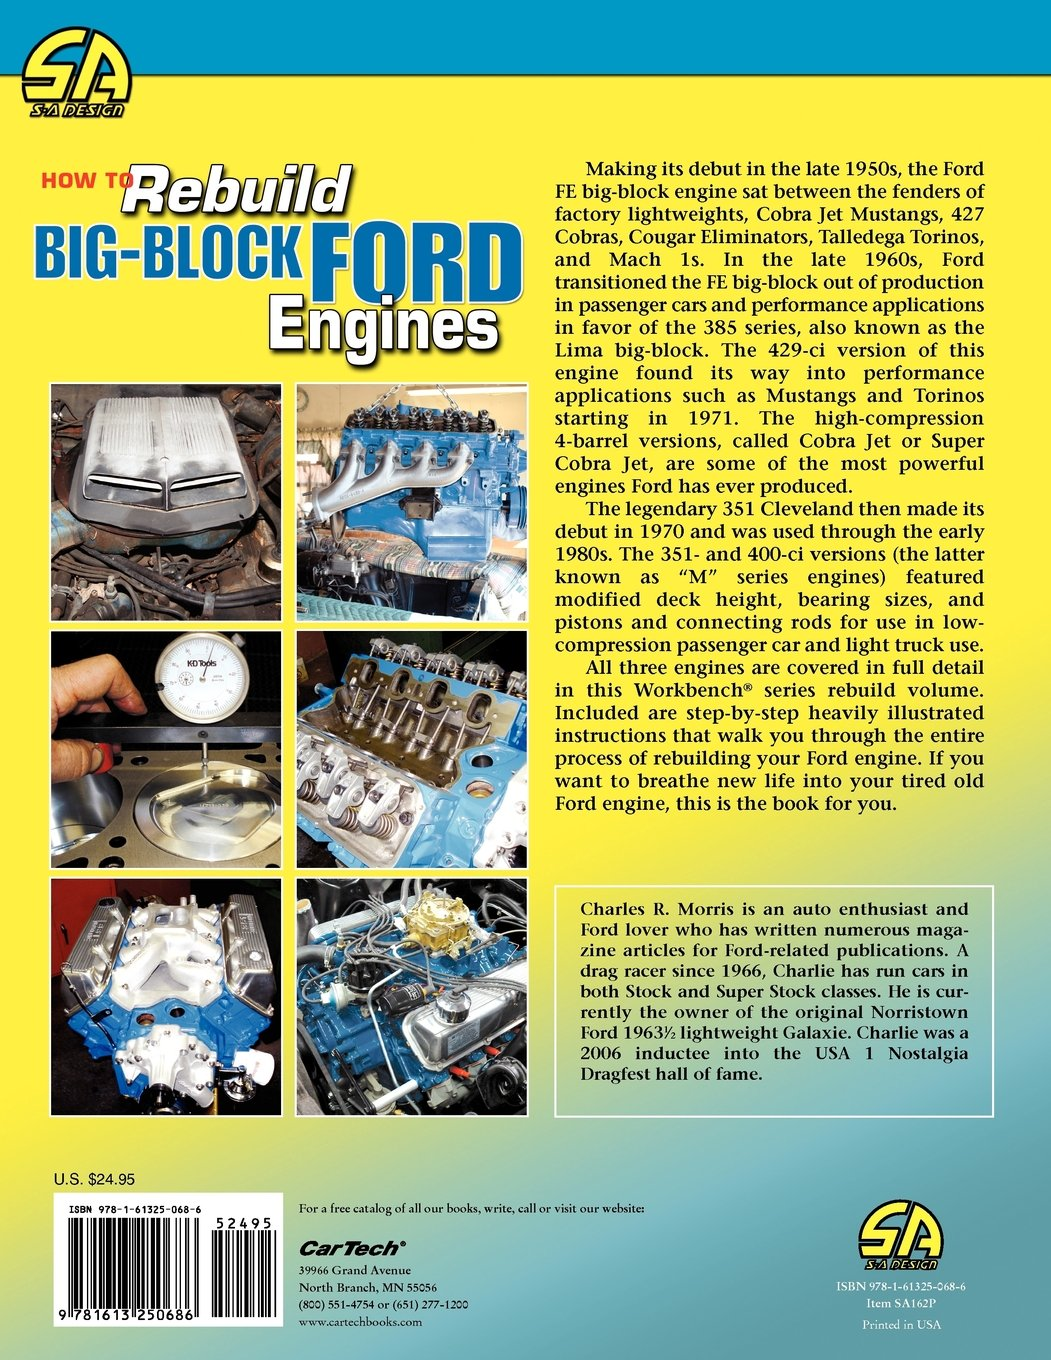 How to rebuild big block ford engines workbench how to charles morris 9781613250686 amazon com books